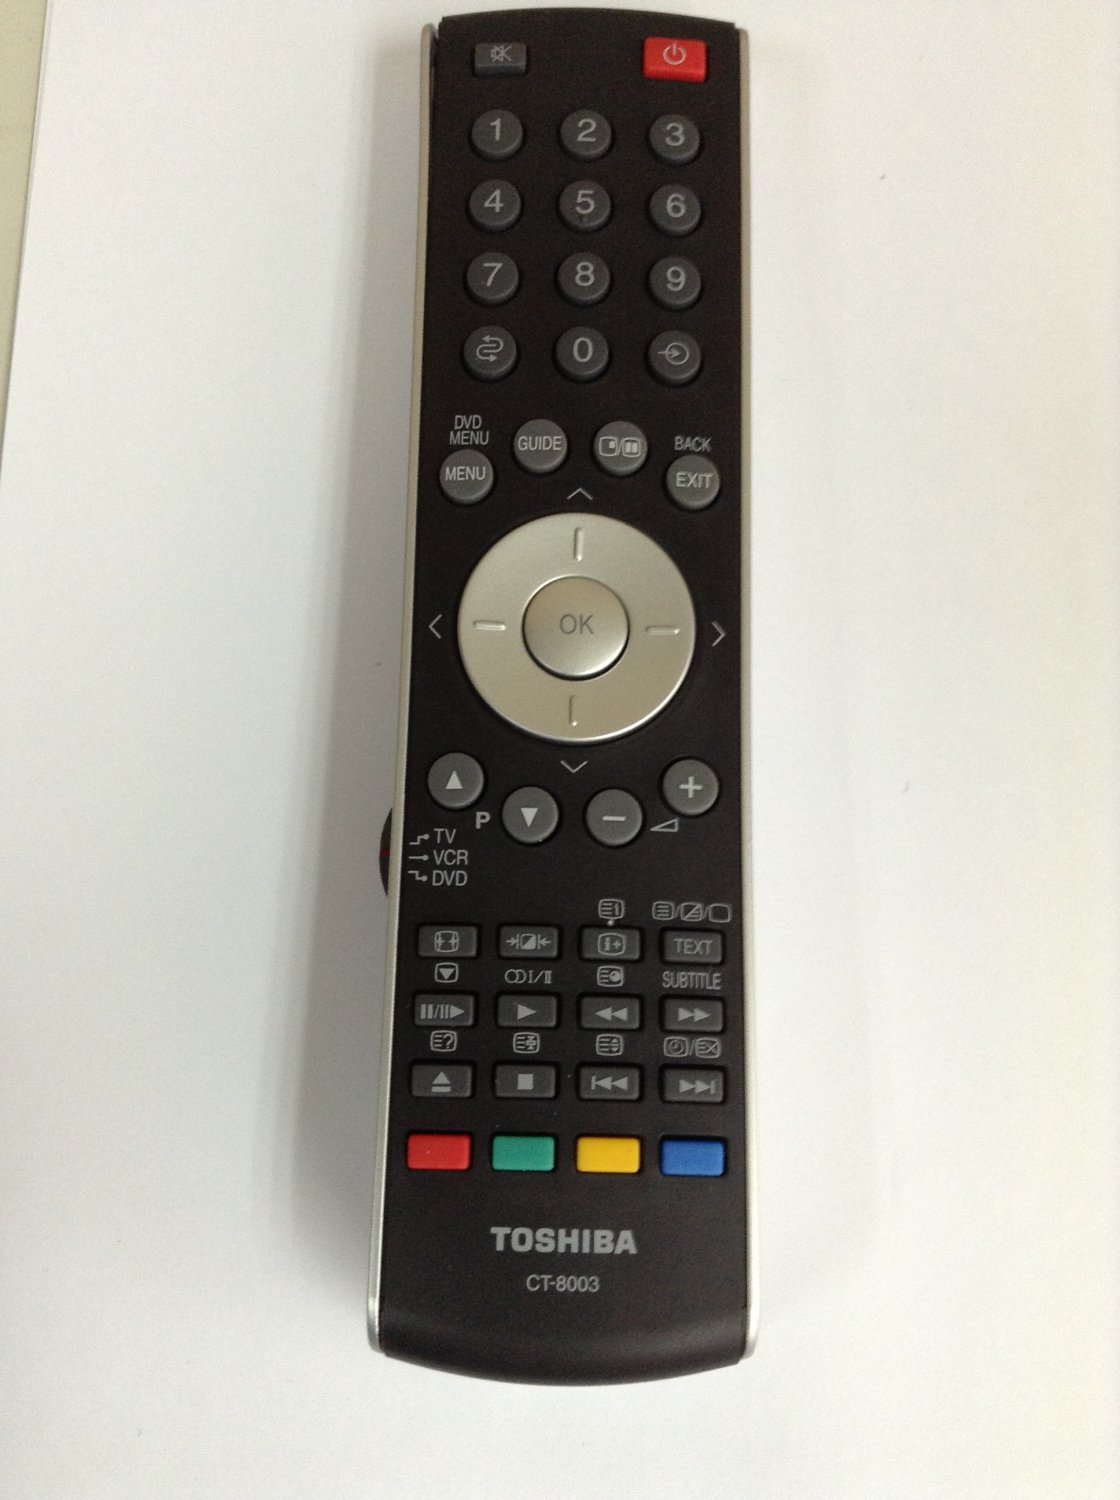 REMOTE CONTROL FOR TOSHIBA TV 42HP83P 42HP84 42HPX84 42HPX95 50HP95 50HPX95